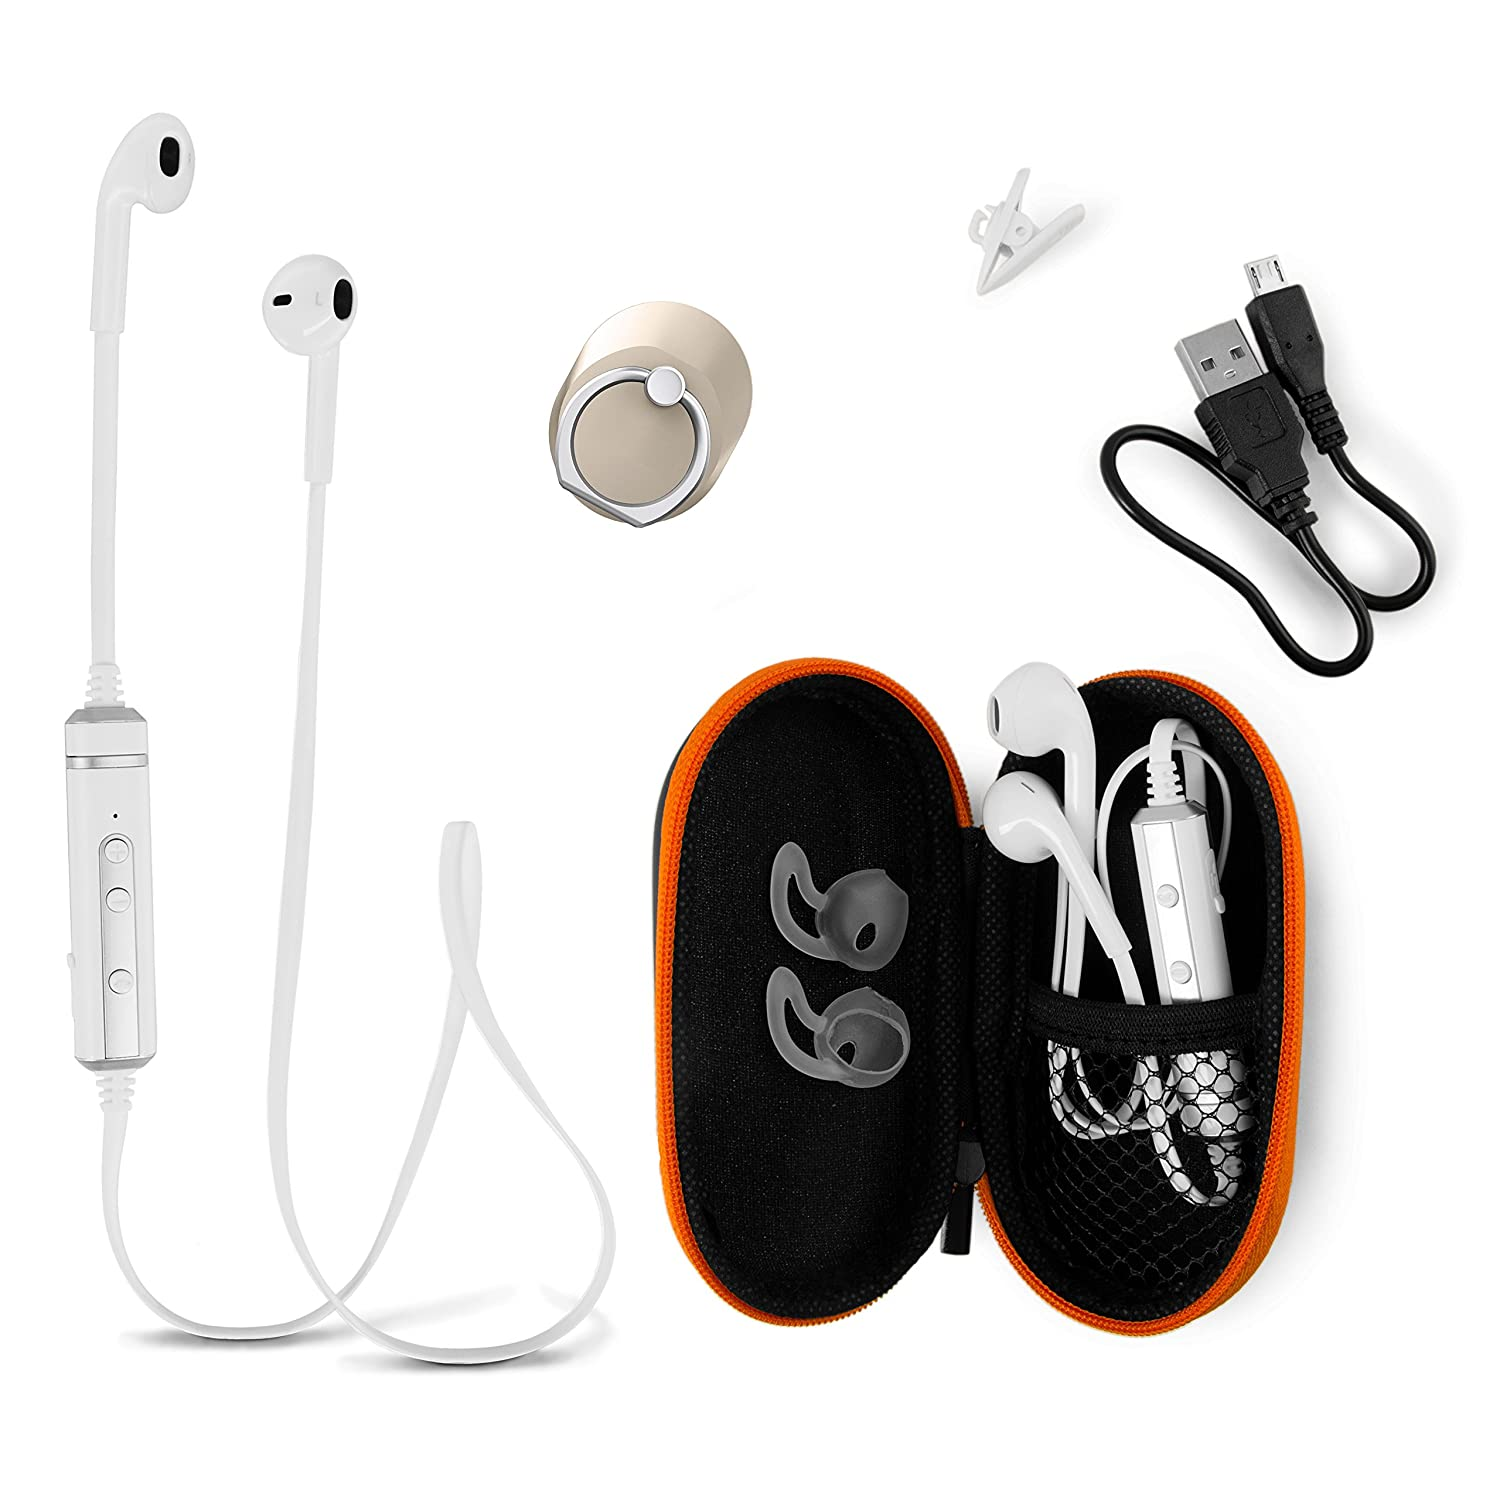 Bluetooth Earphones Headset with Carry Case – Best Wireless Earbuds Headphones Compatible with iPhone and Android Enjoy Clear Stereo Sound with 2 Years Guarantee